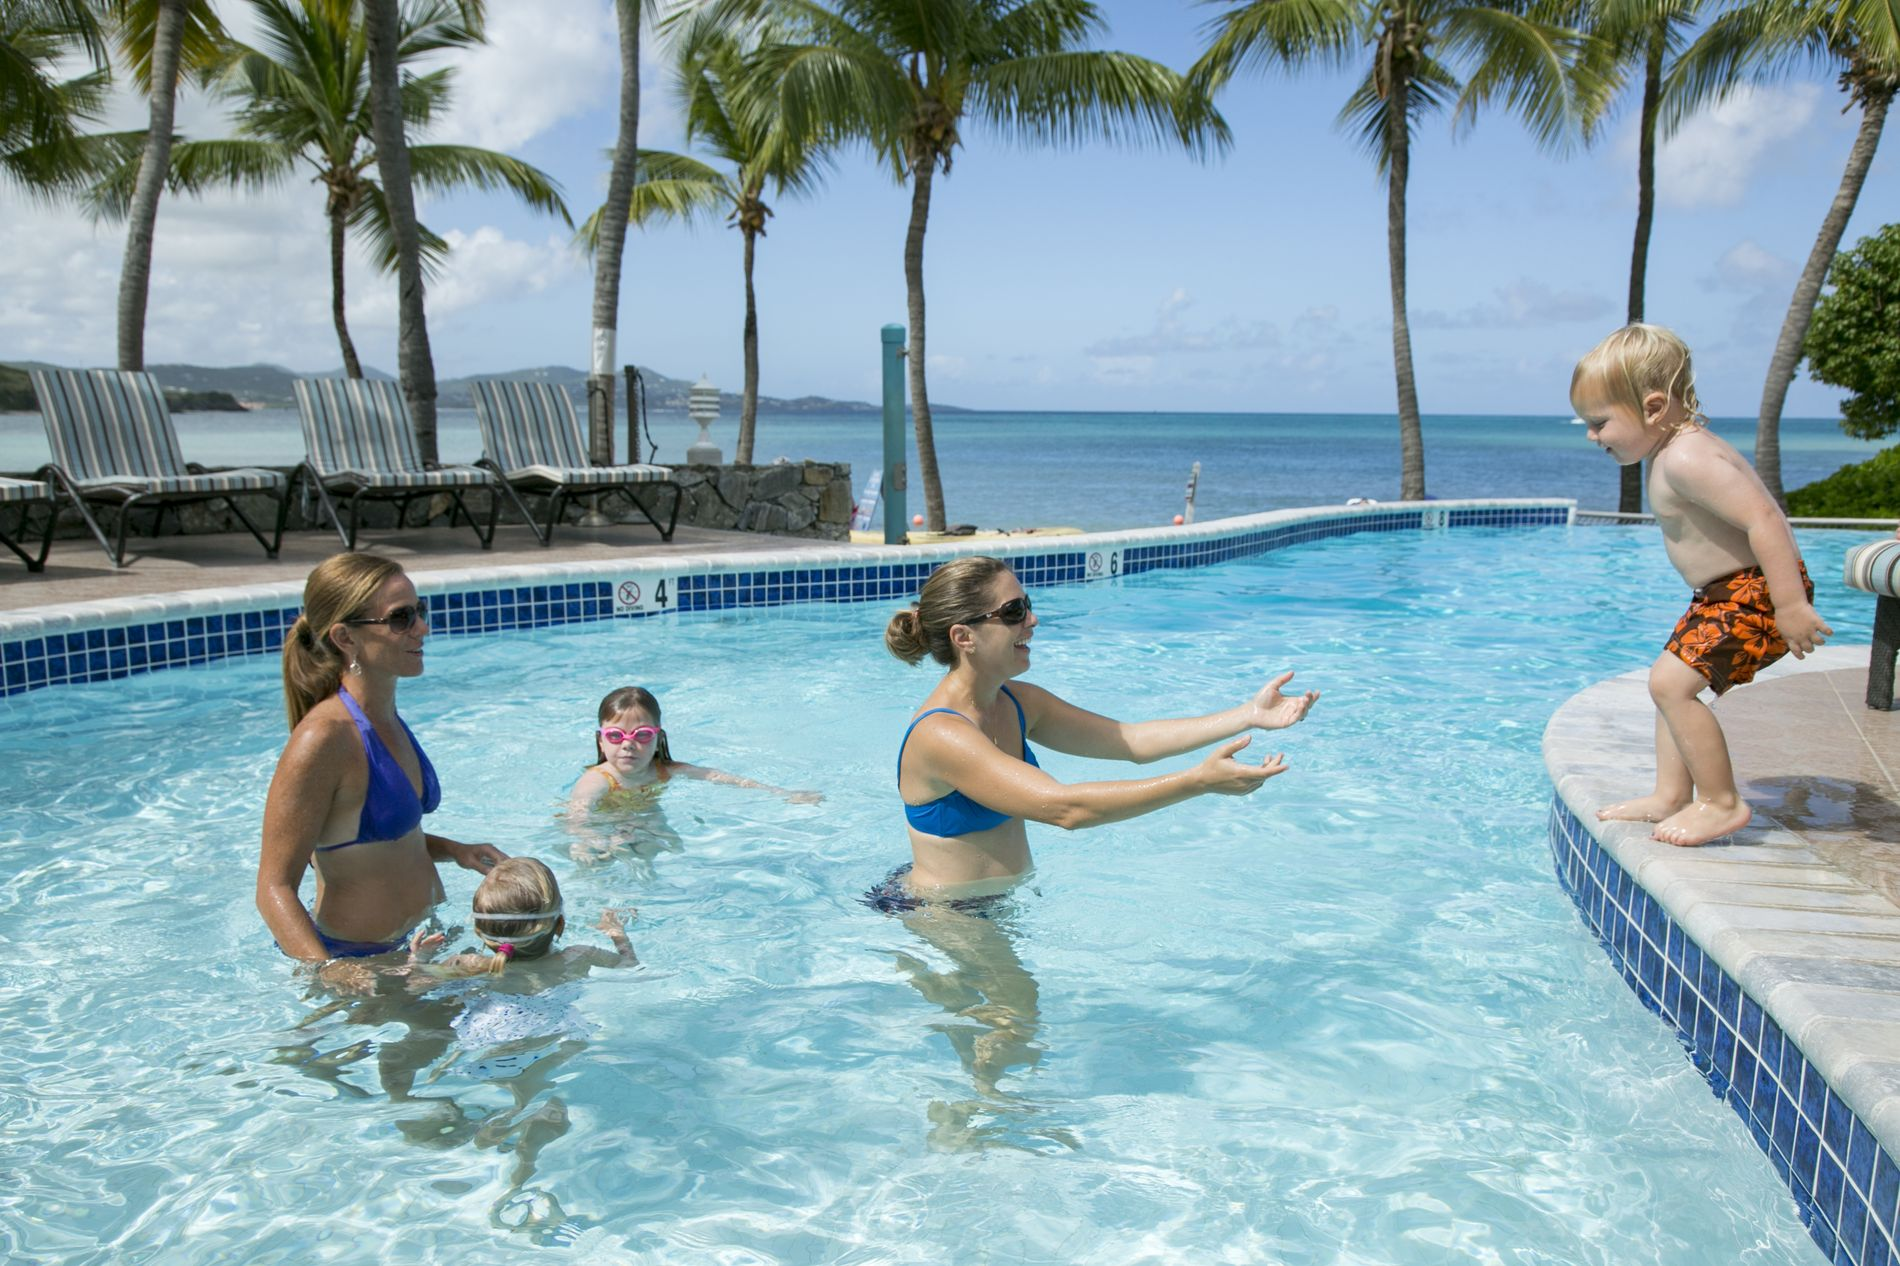 Family in Pool with little kid ready to jump in